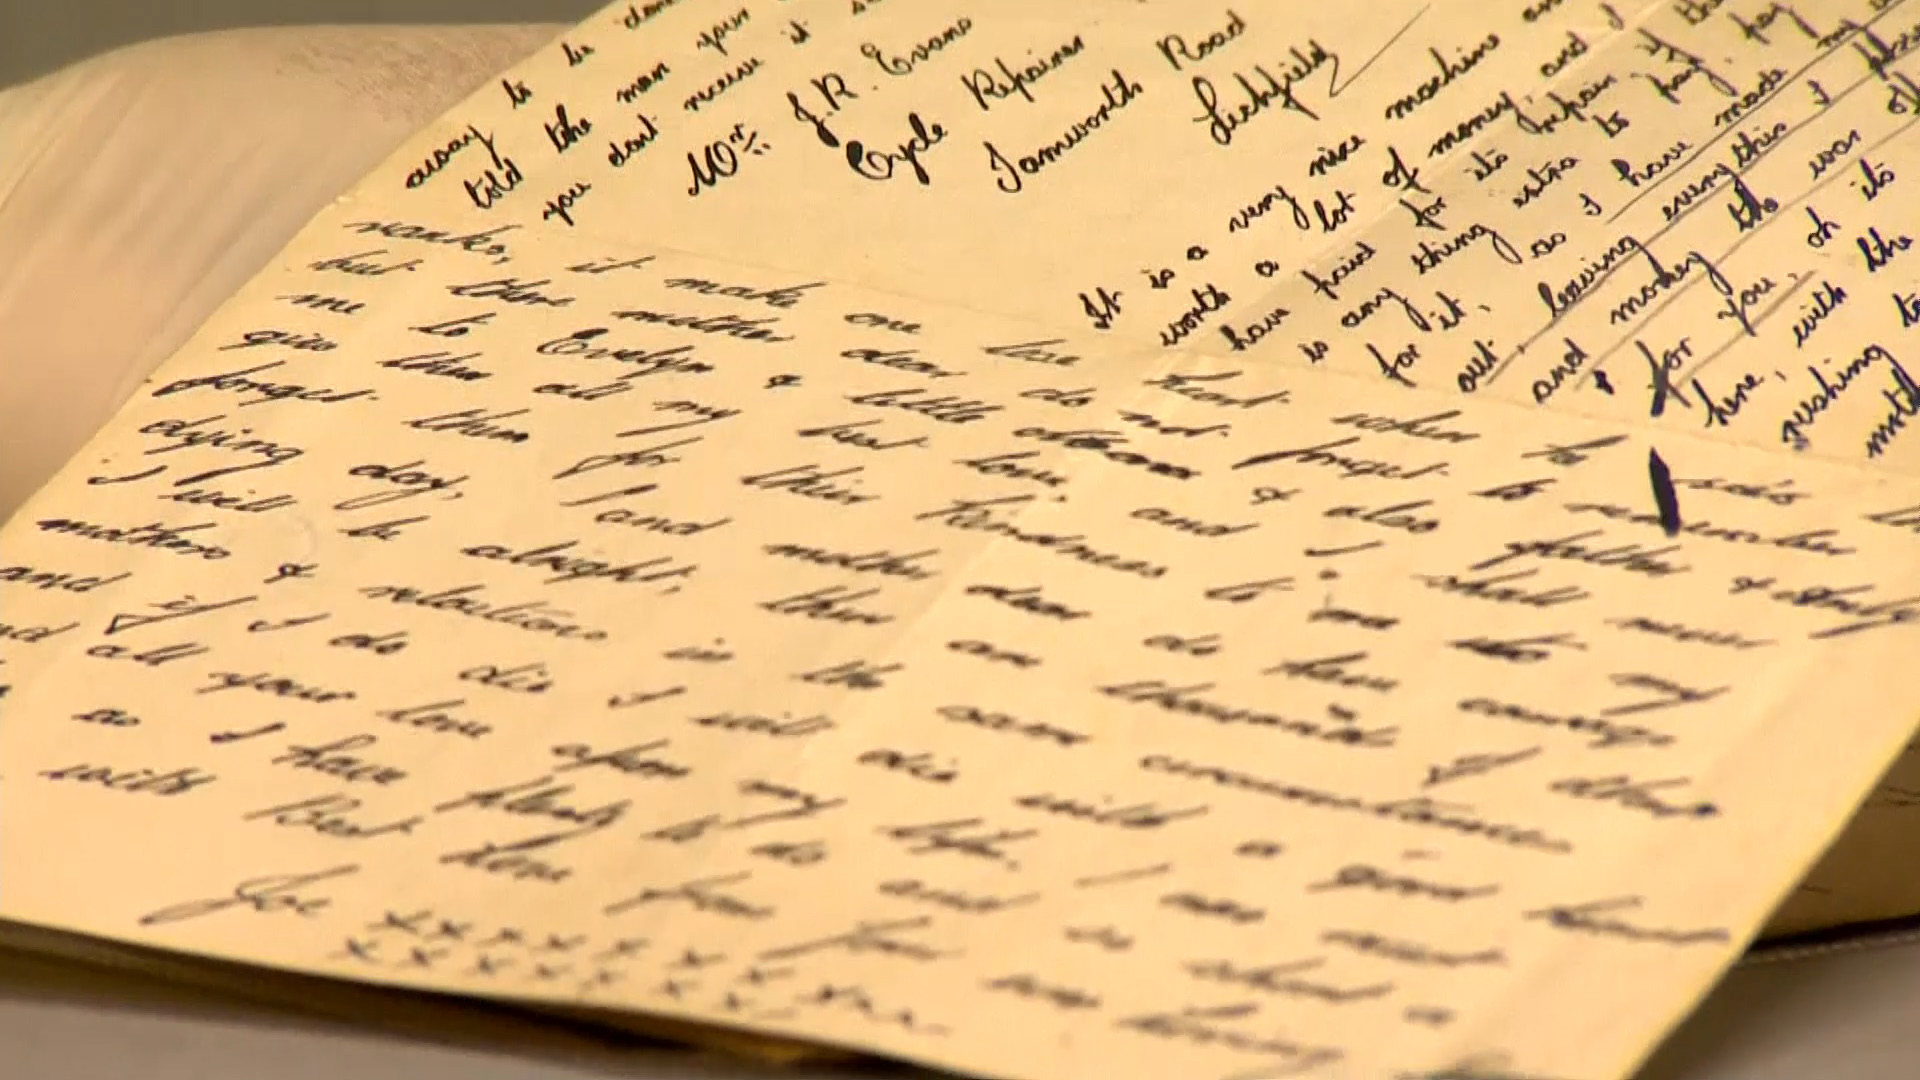 British soldiers' World War I letters and wills go online - CBS News